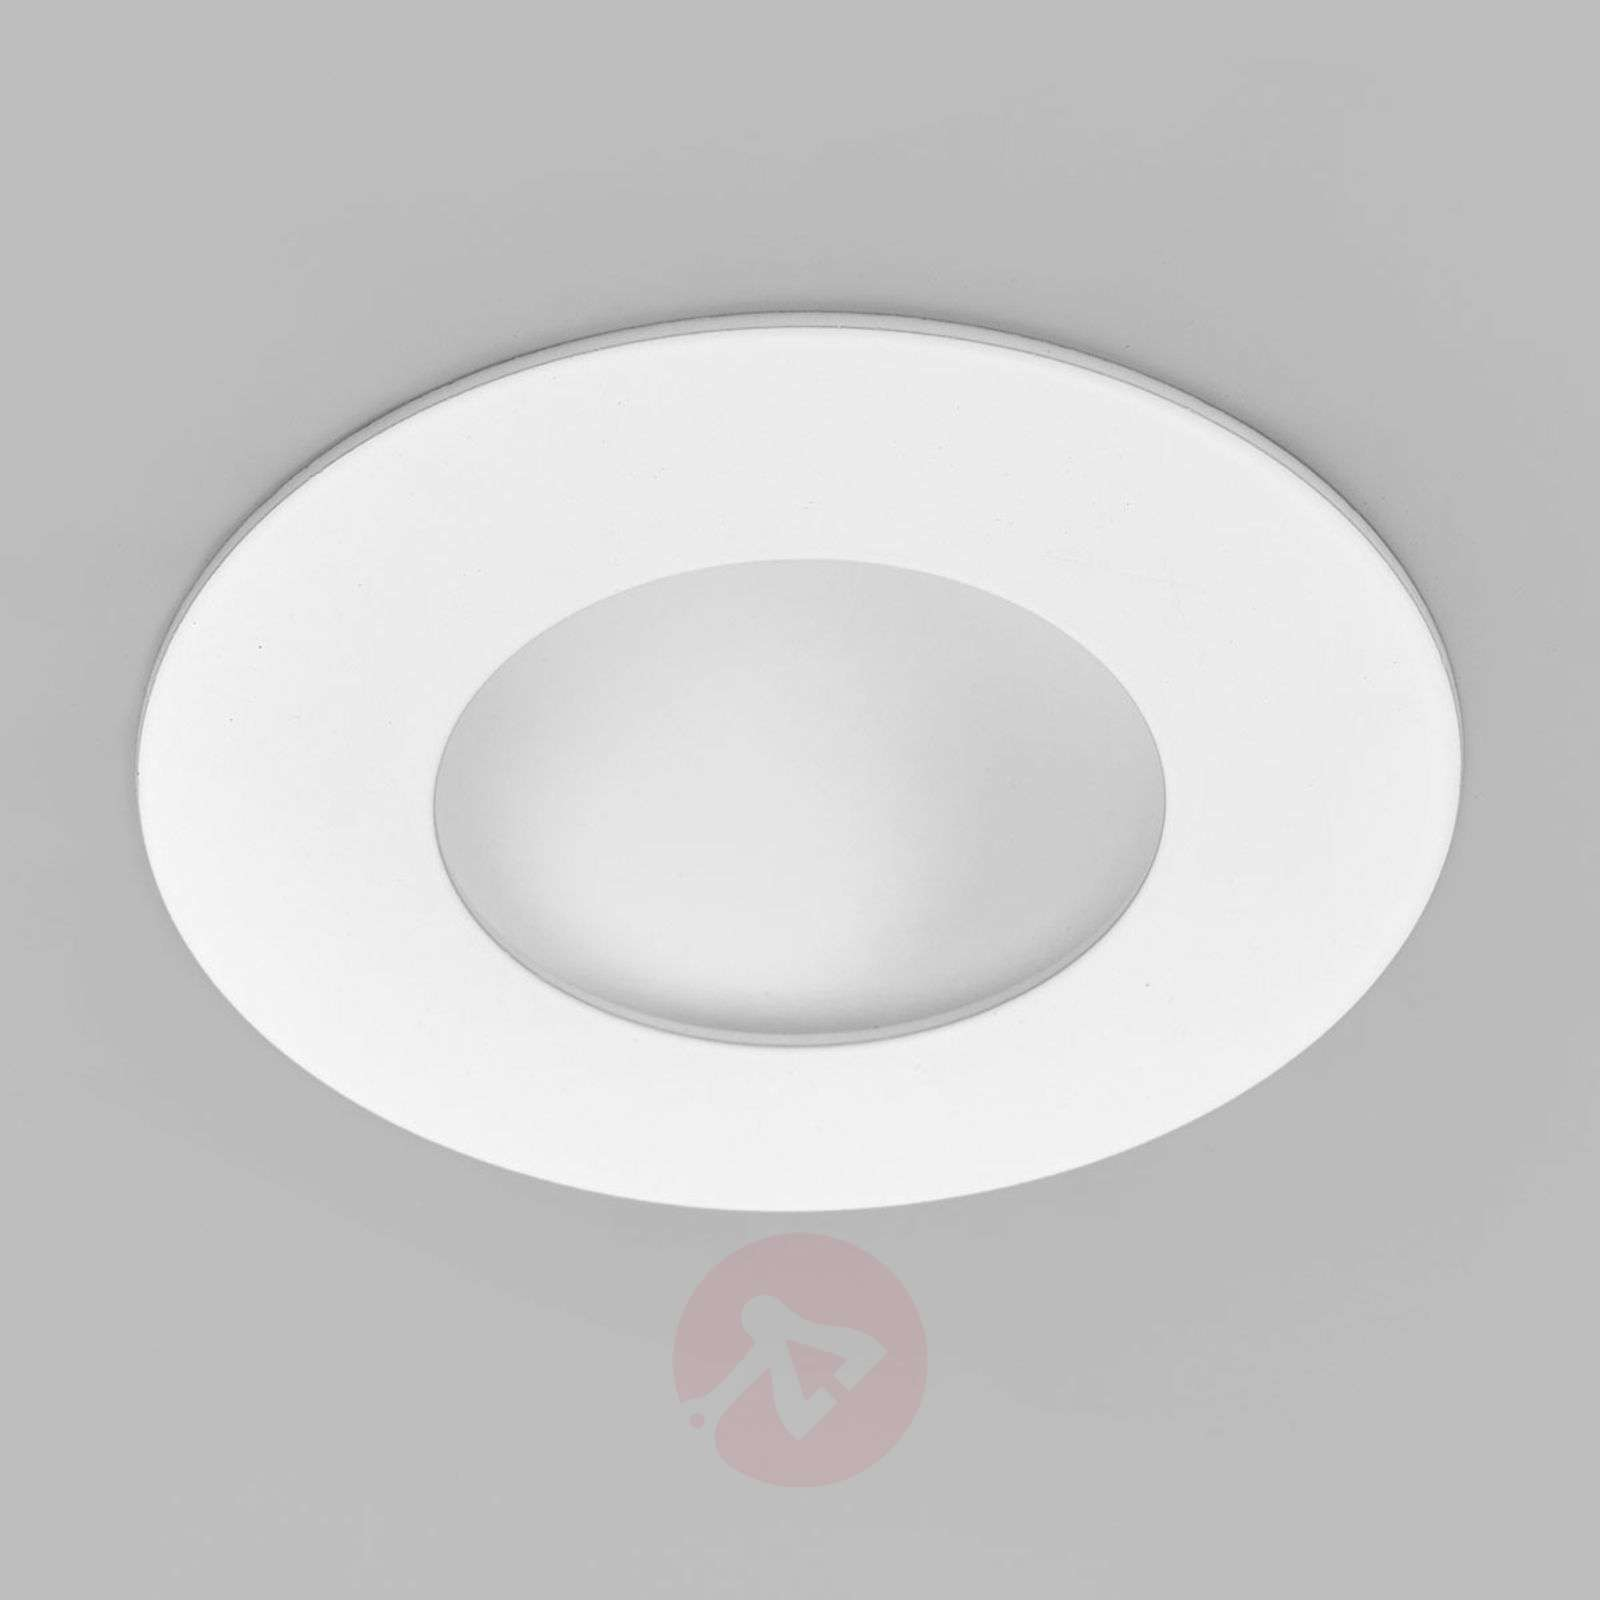 Spot encastré LED Orbita, blanc chaud, set de 3-3057045-01